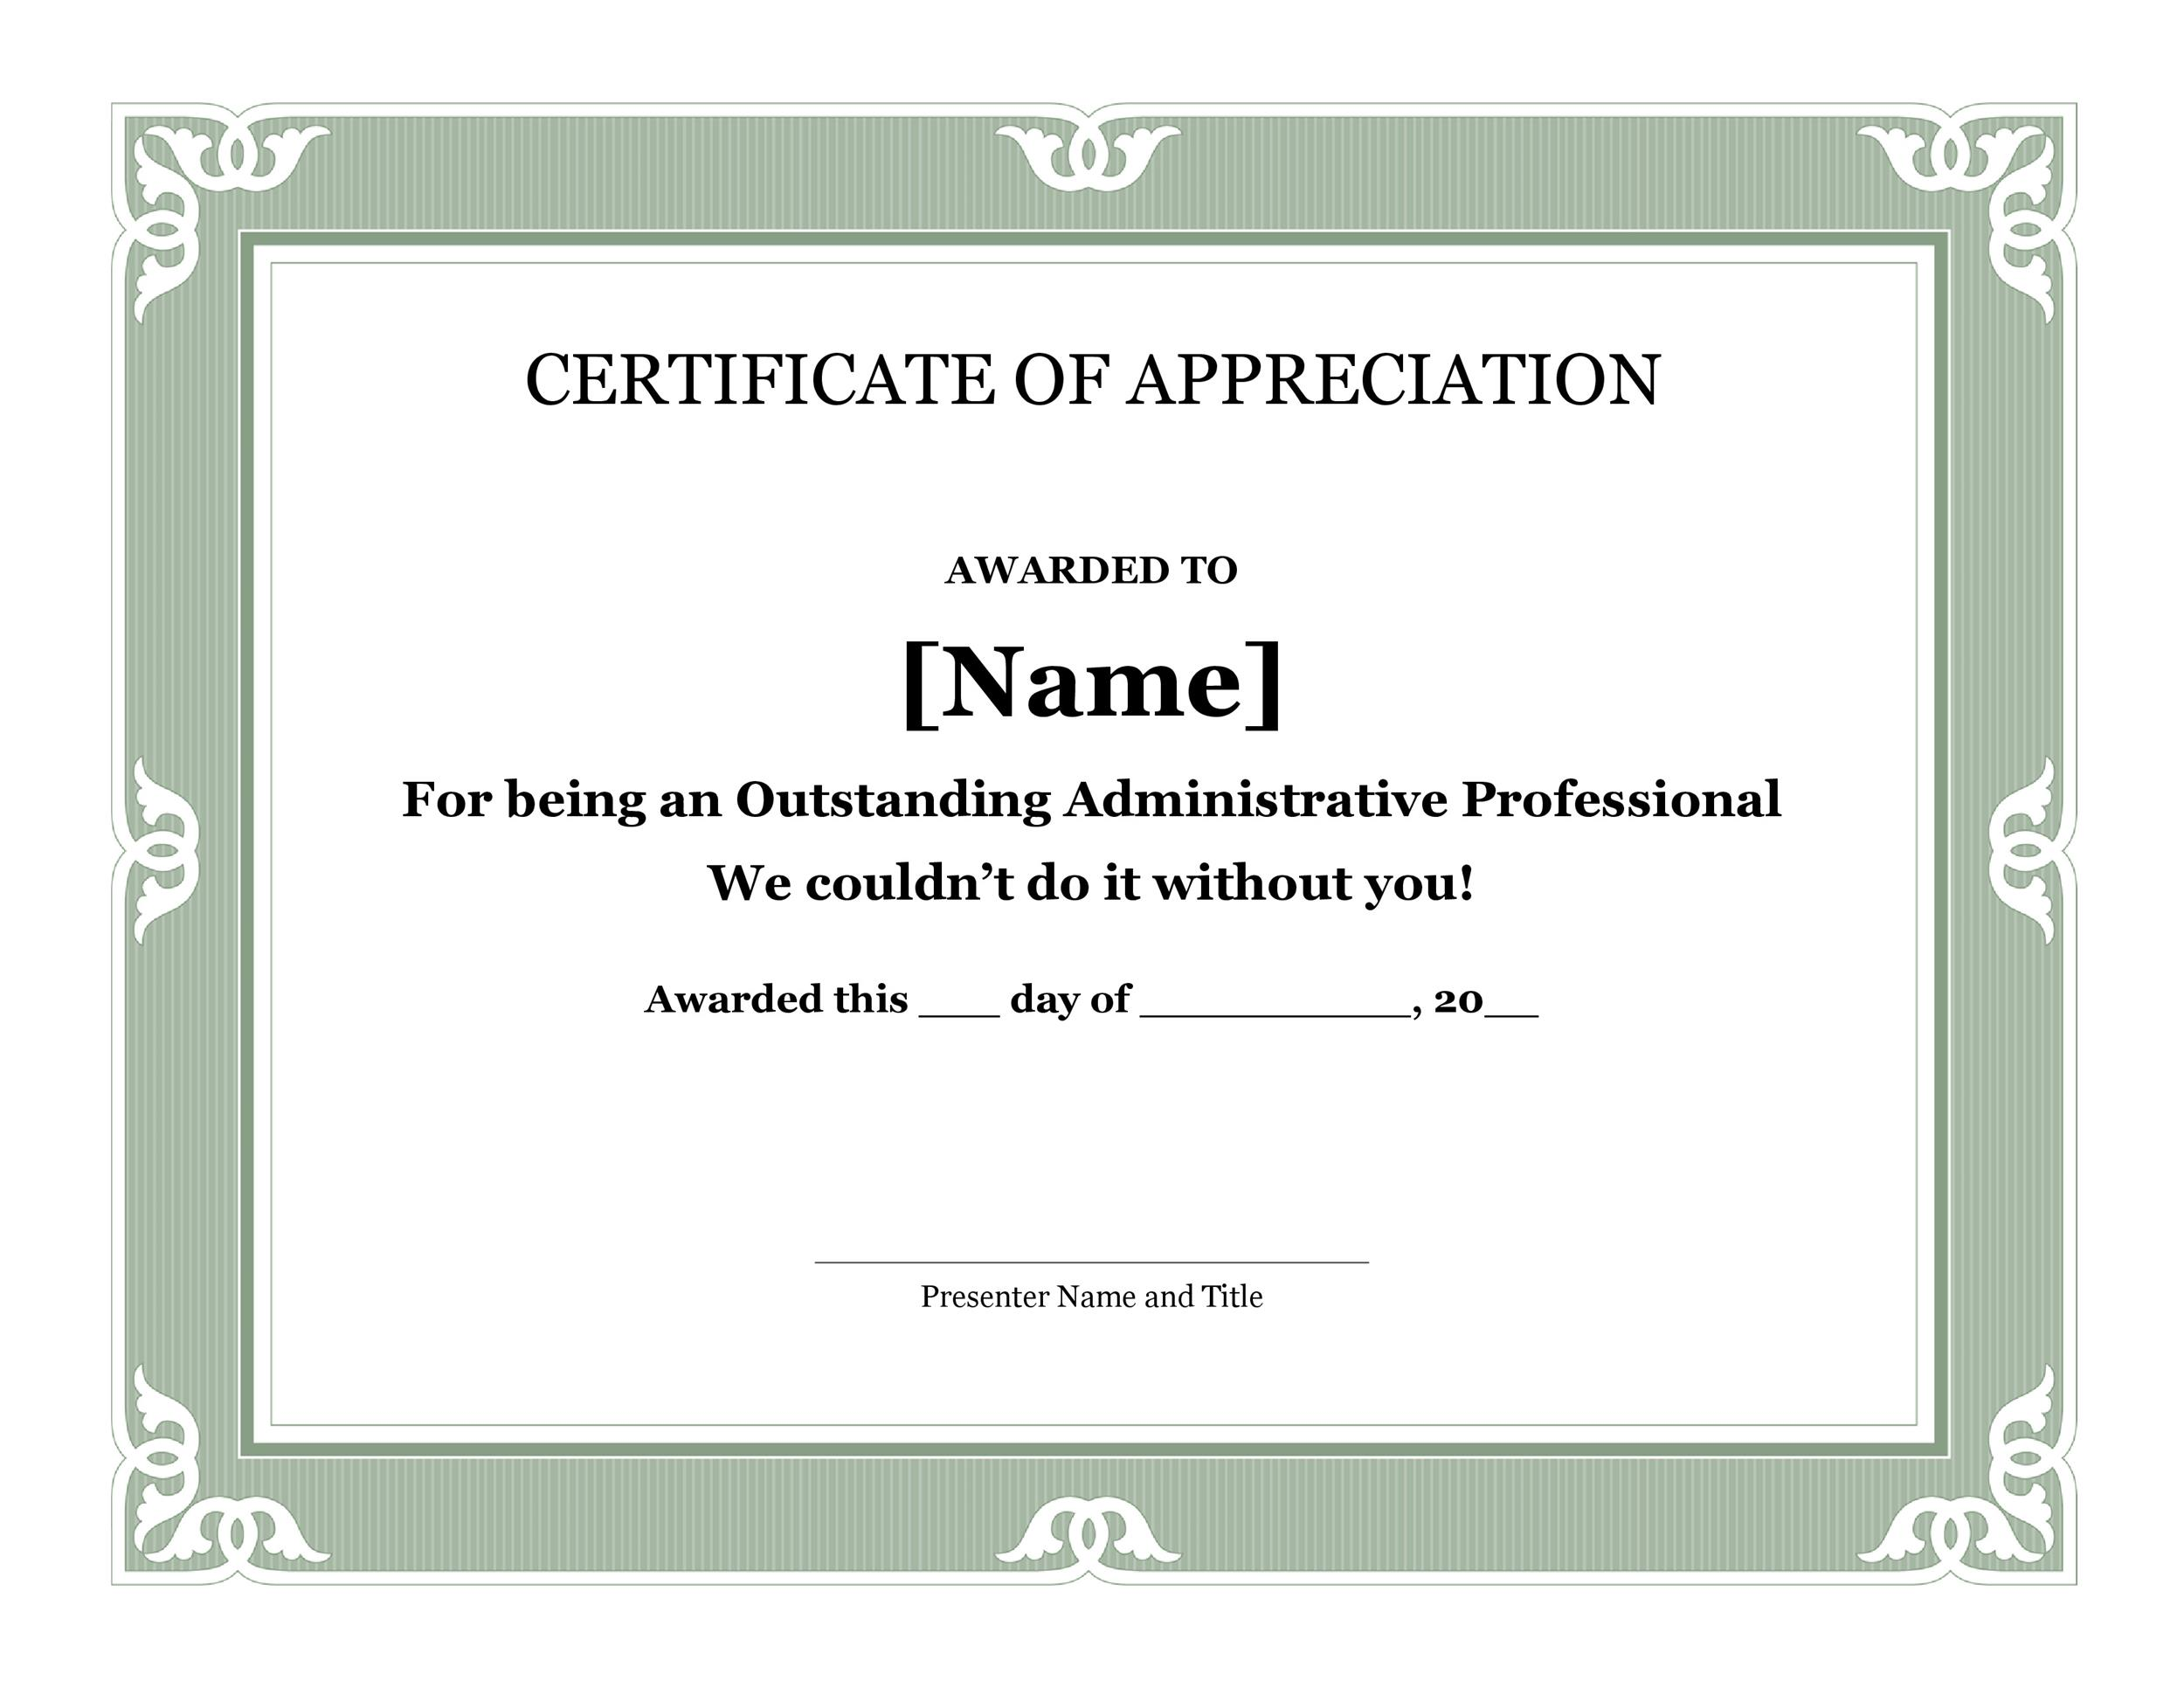 Printable Certificate Of Appreciation 18  Certificate Of Appreciation Word Template